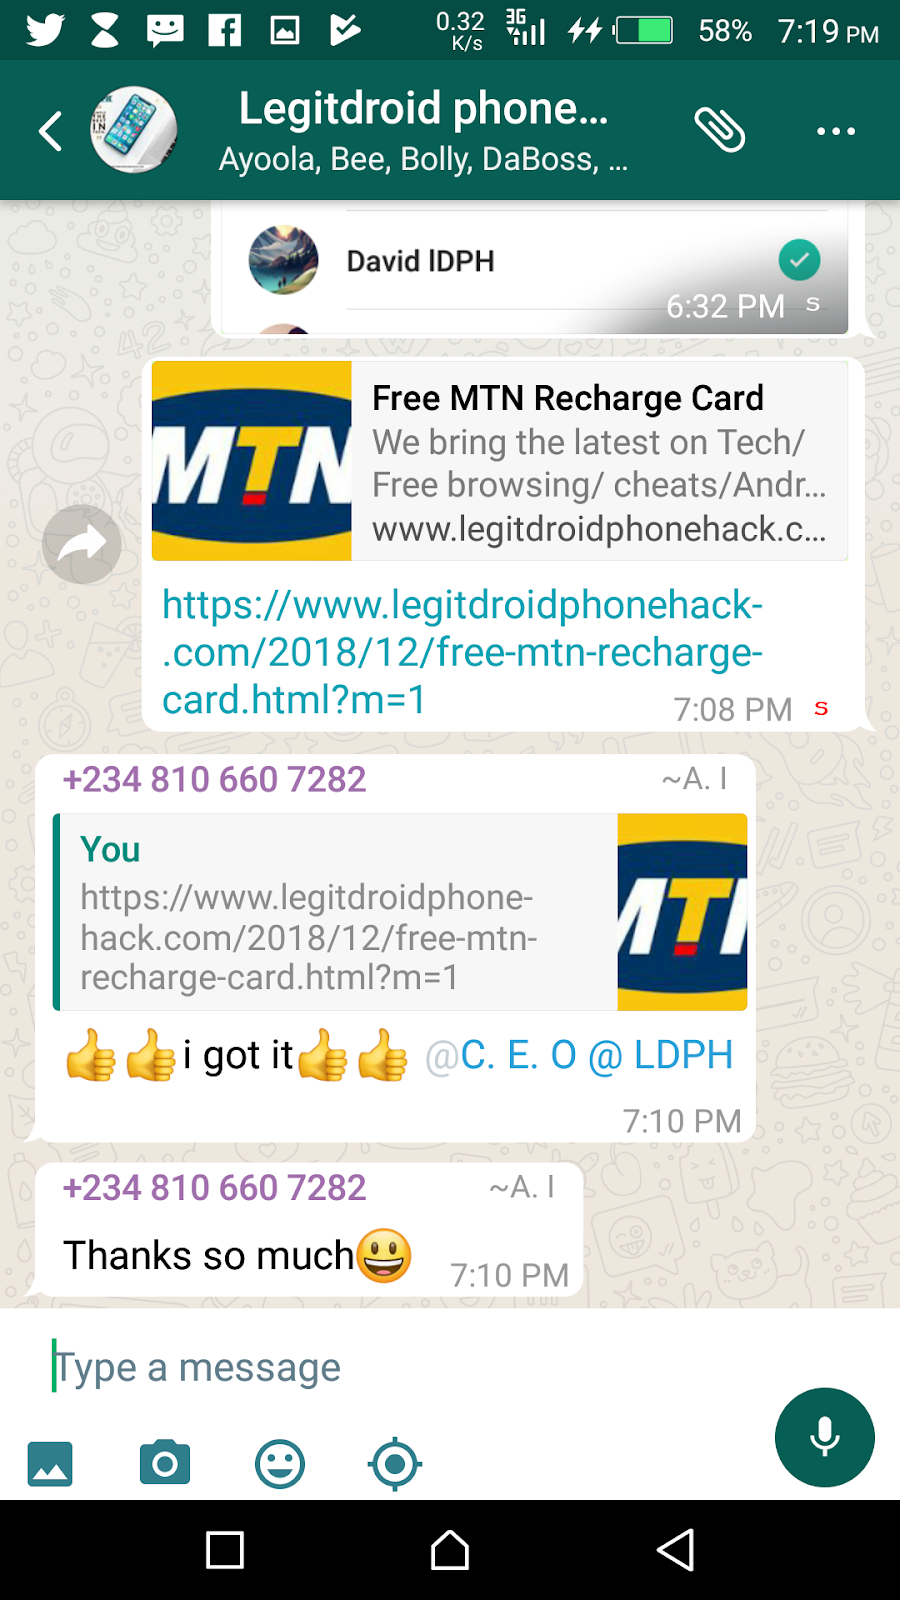 Free MTN Recharge Card